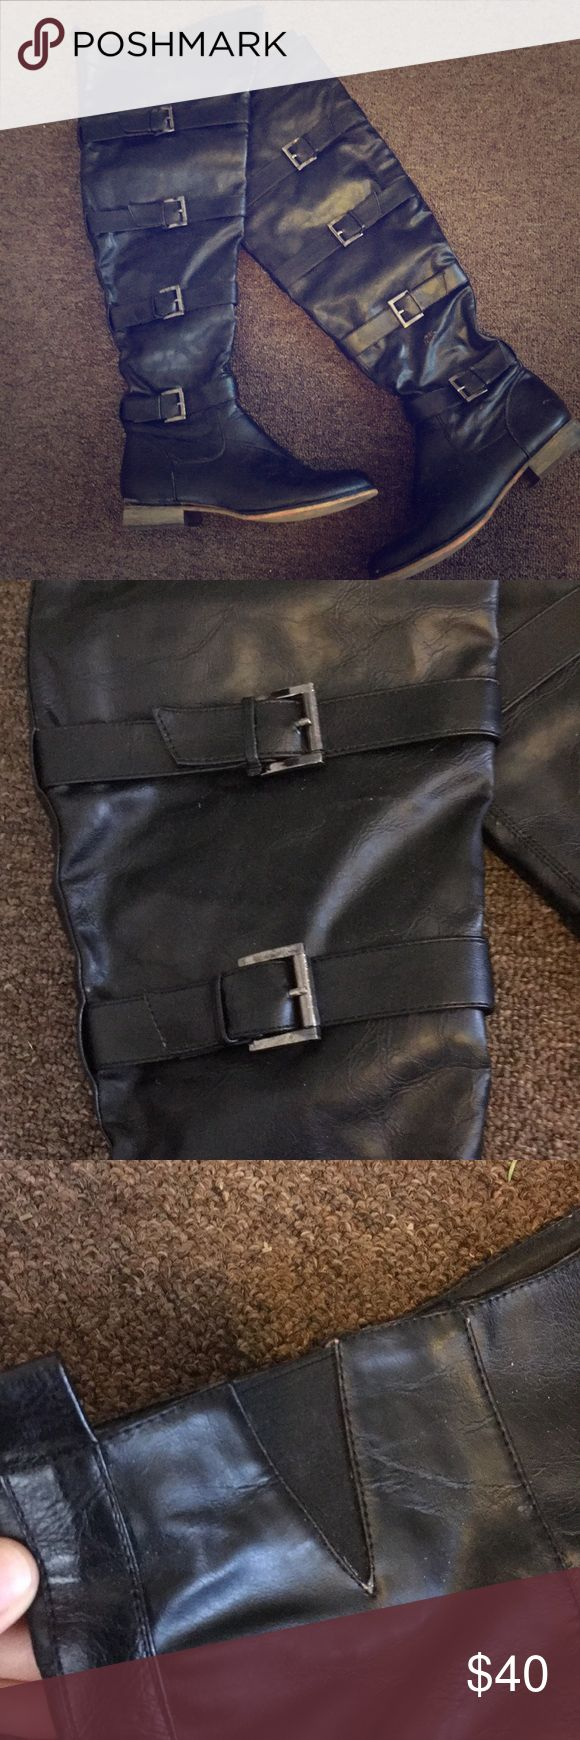 Over the Knee Buckle Boots Super sexy!!  Vegan Leather.  Spots with scuffing and signs of wear as pictured.    🌹Posh Ambassador🌷 📦Fast Shipping📫 ⭐️5 Star Rated⭐️ 💕THANK YOU❤️ Breckelles Shoes Over the Knee Boots